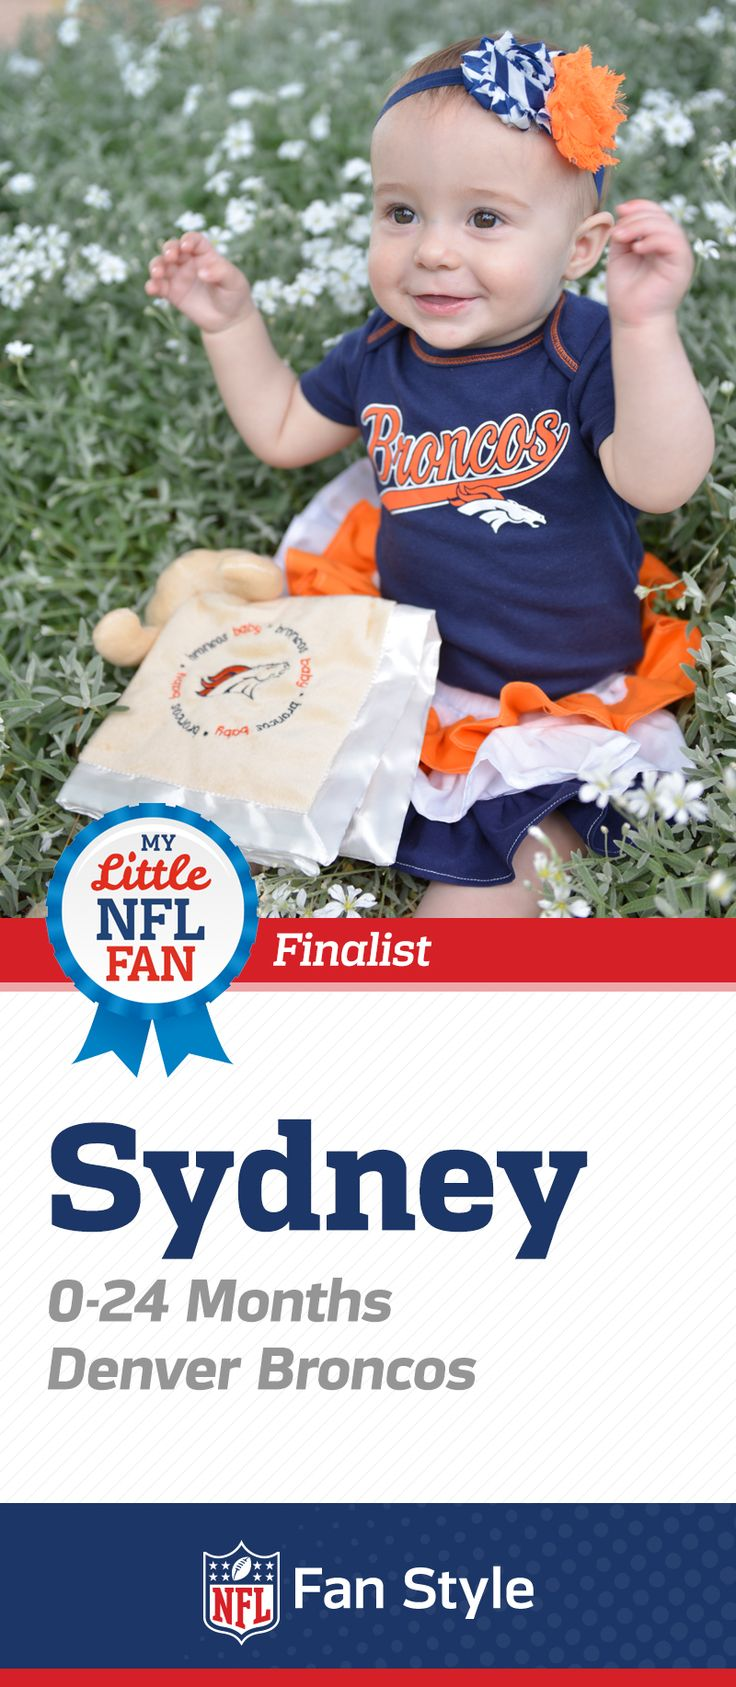 Is Sydney putting her arms up to celebrate a Denver Broncos score? She's one little fan who already knows all the signs. Click here to vote for her!